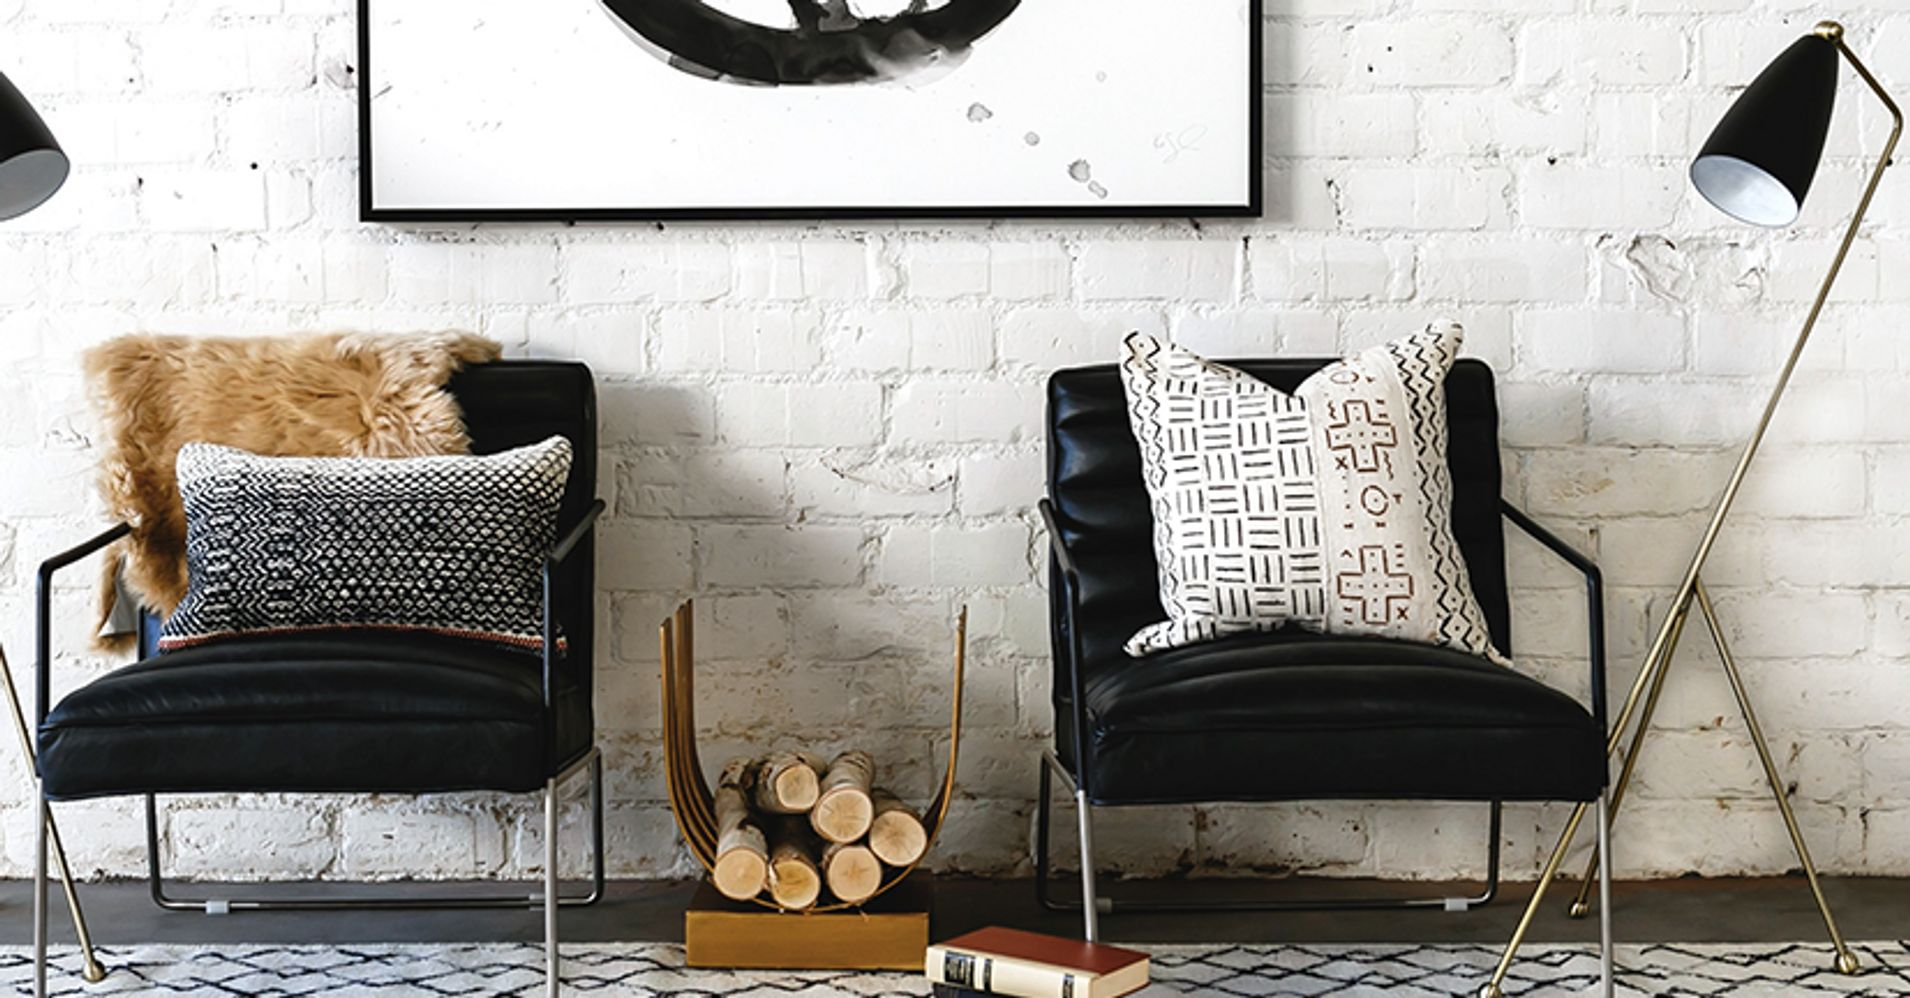 30 Inexpensive Decorating Ideas: 29 Budget-Friendly Sites To Find Cheap Home Decor